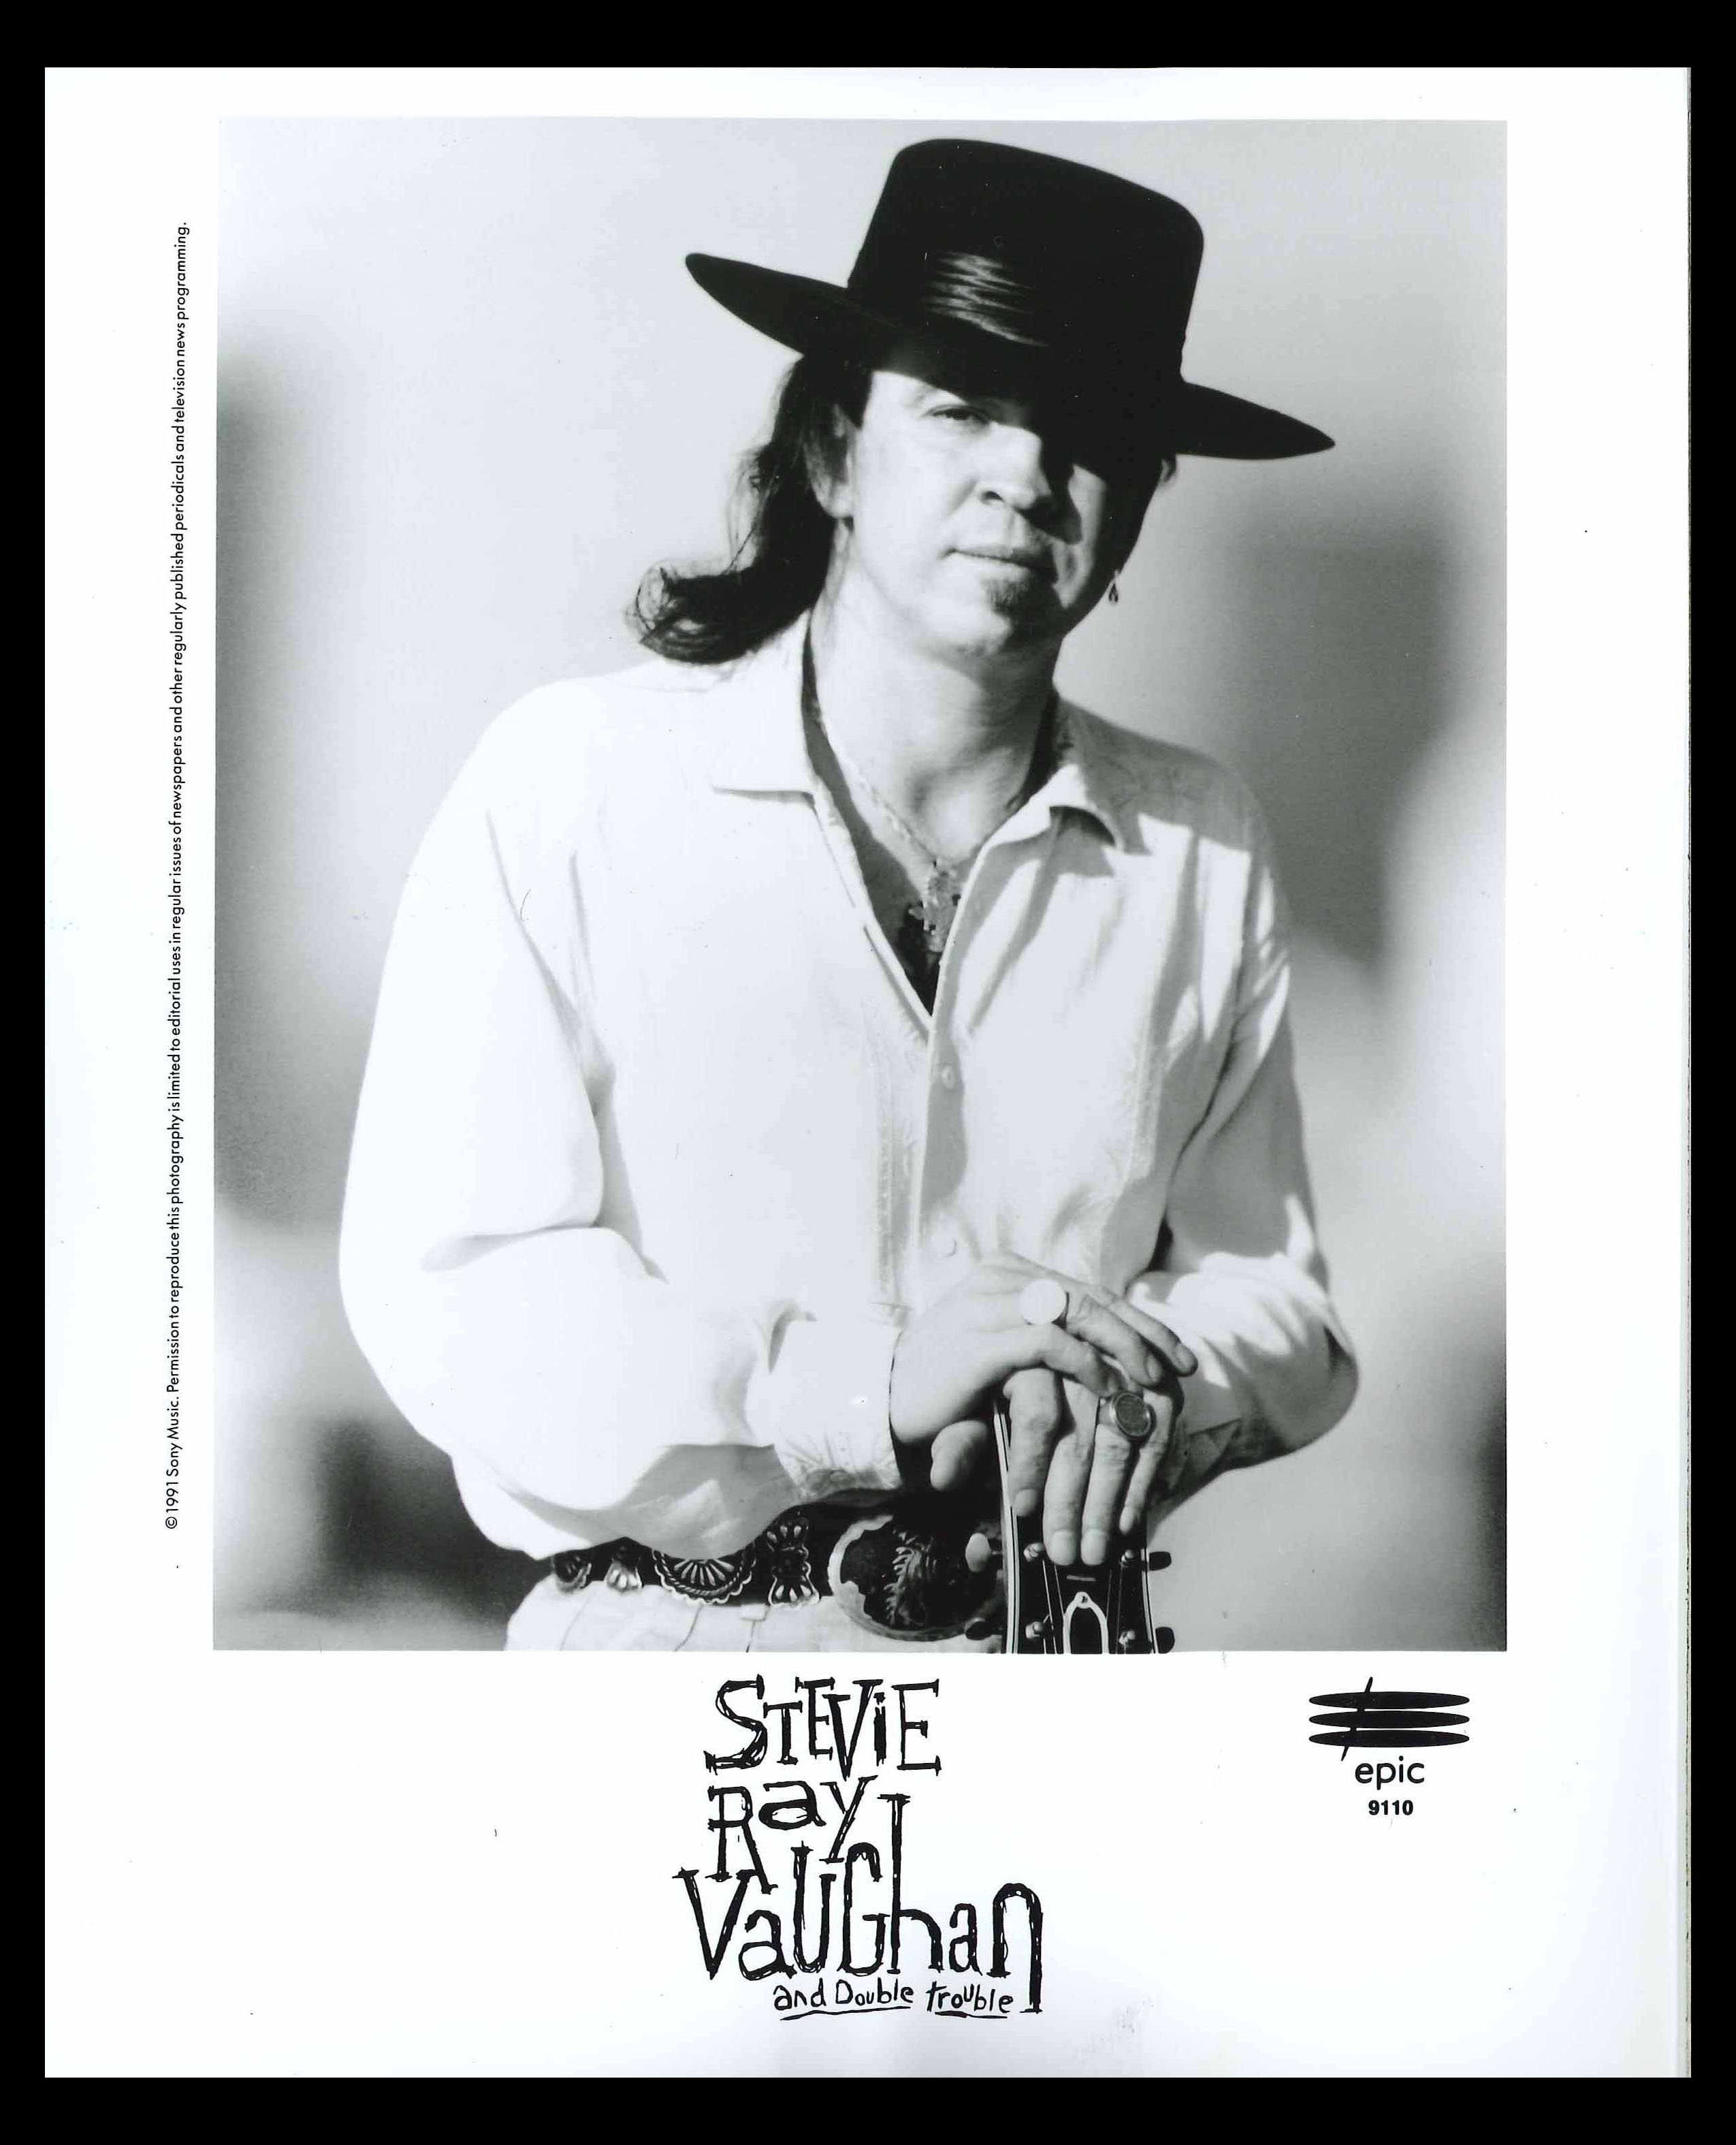 Stevie Ray Vaughn publicity photo